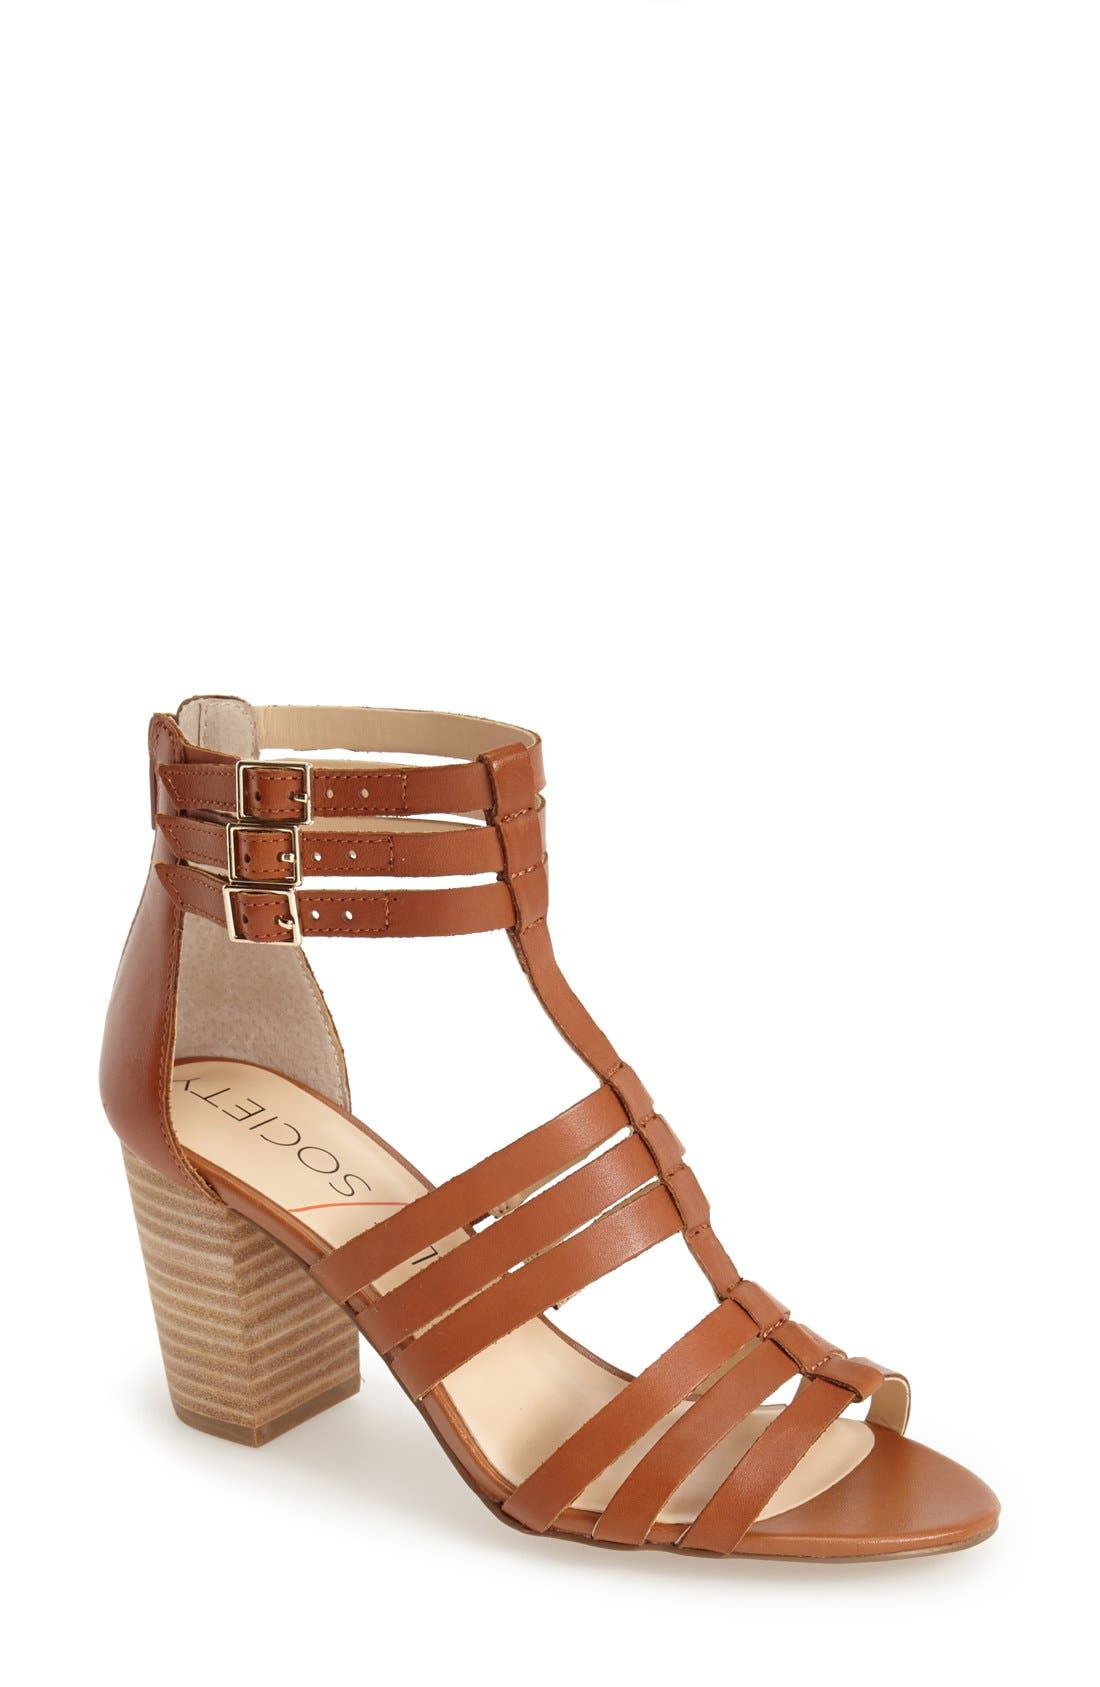 Alternate Image 1 Selected - Sole Society 'Elise' Gladiator Sandal (Women)